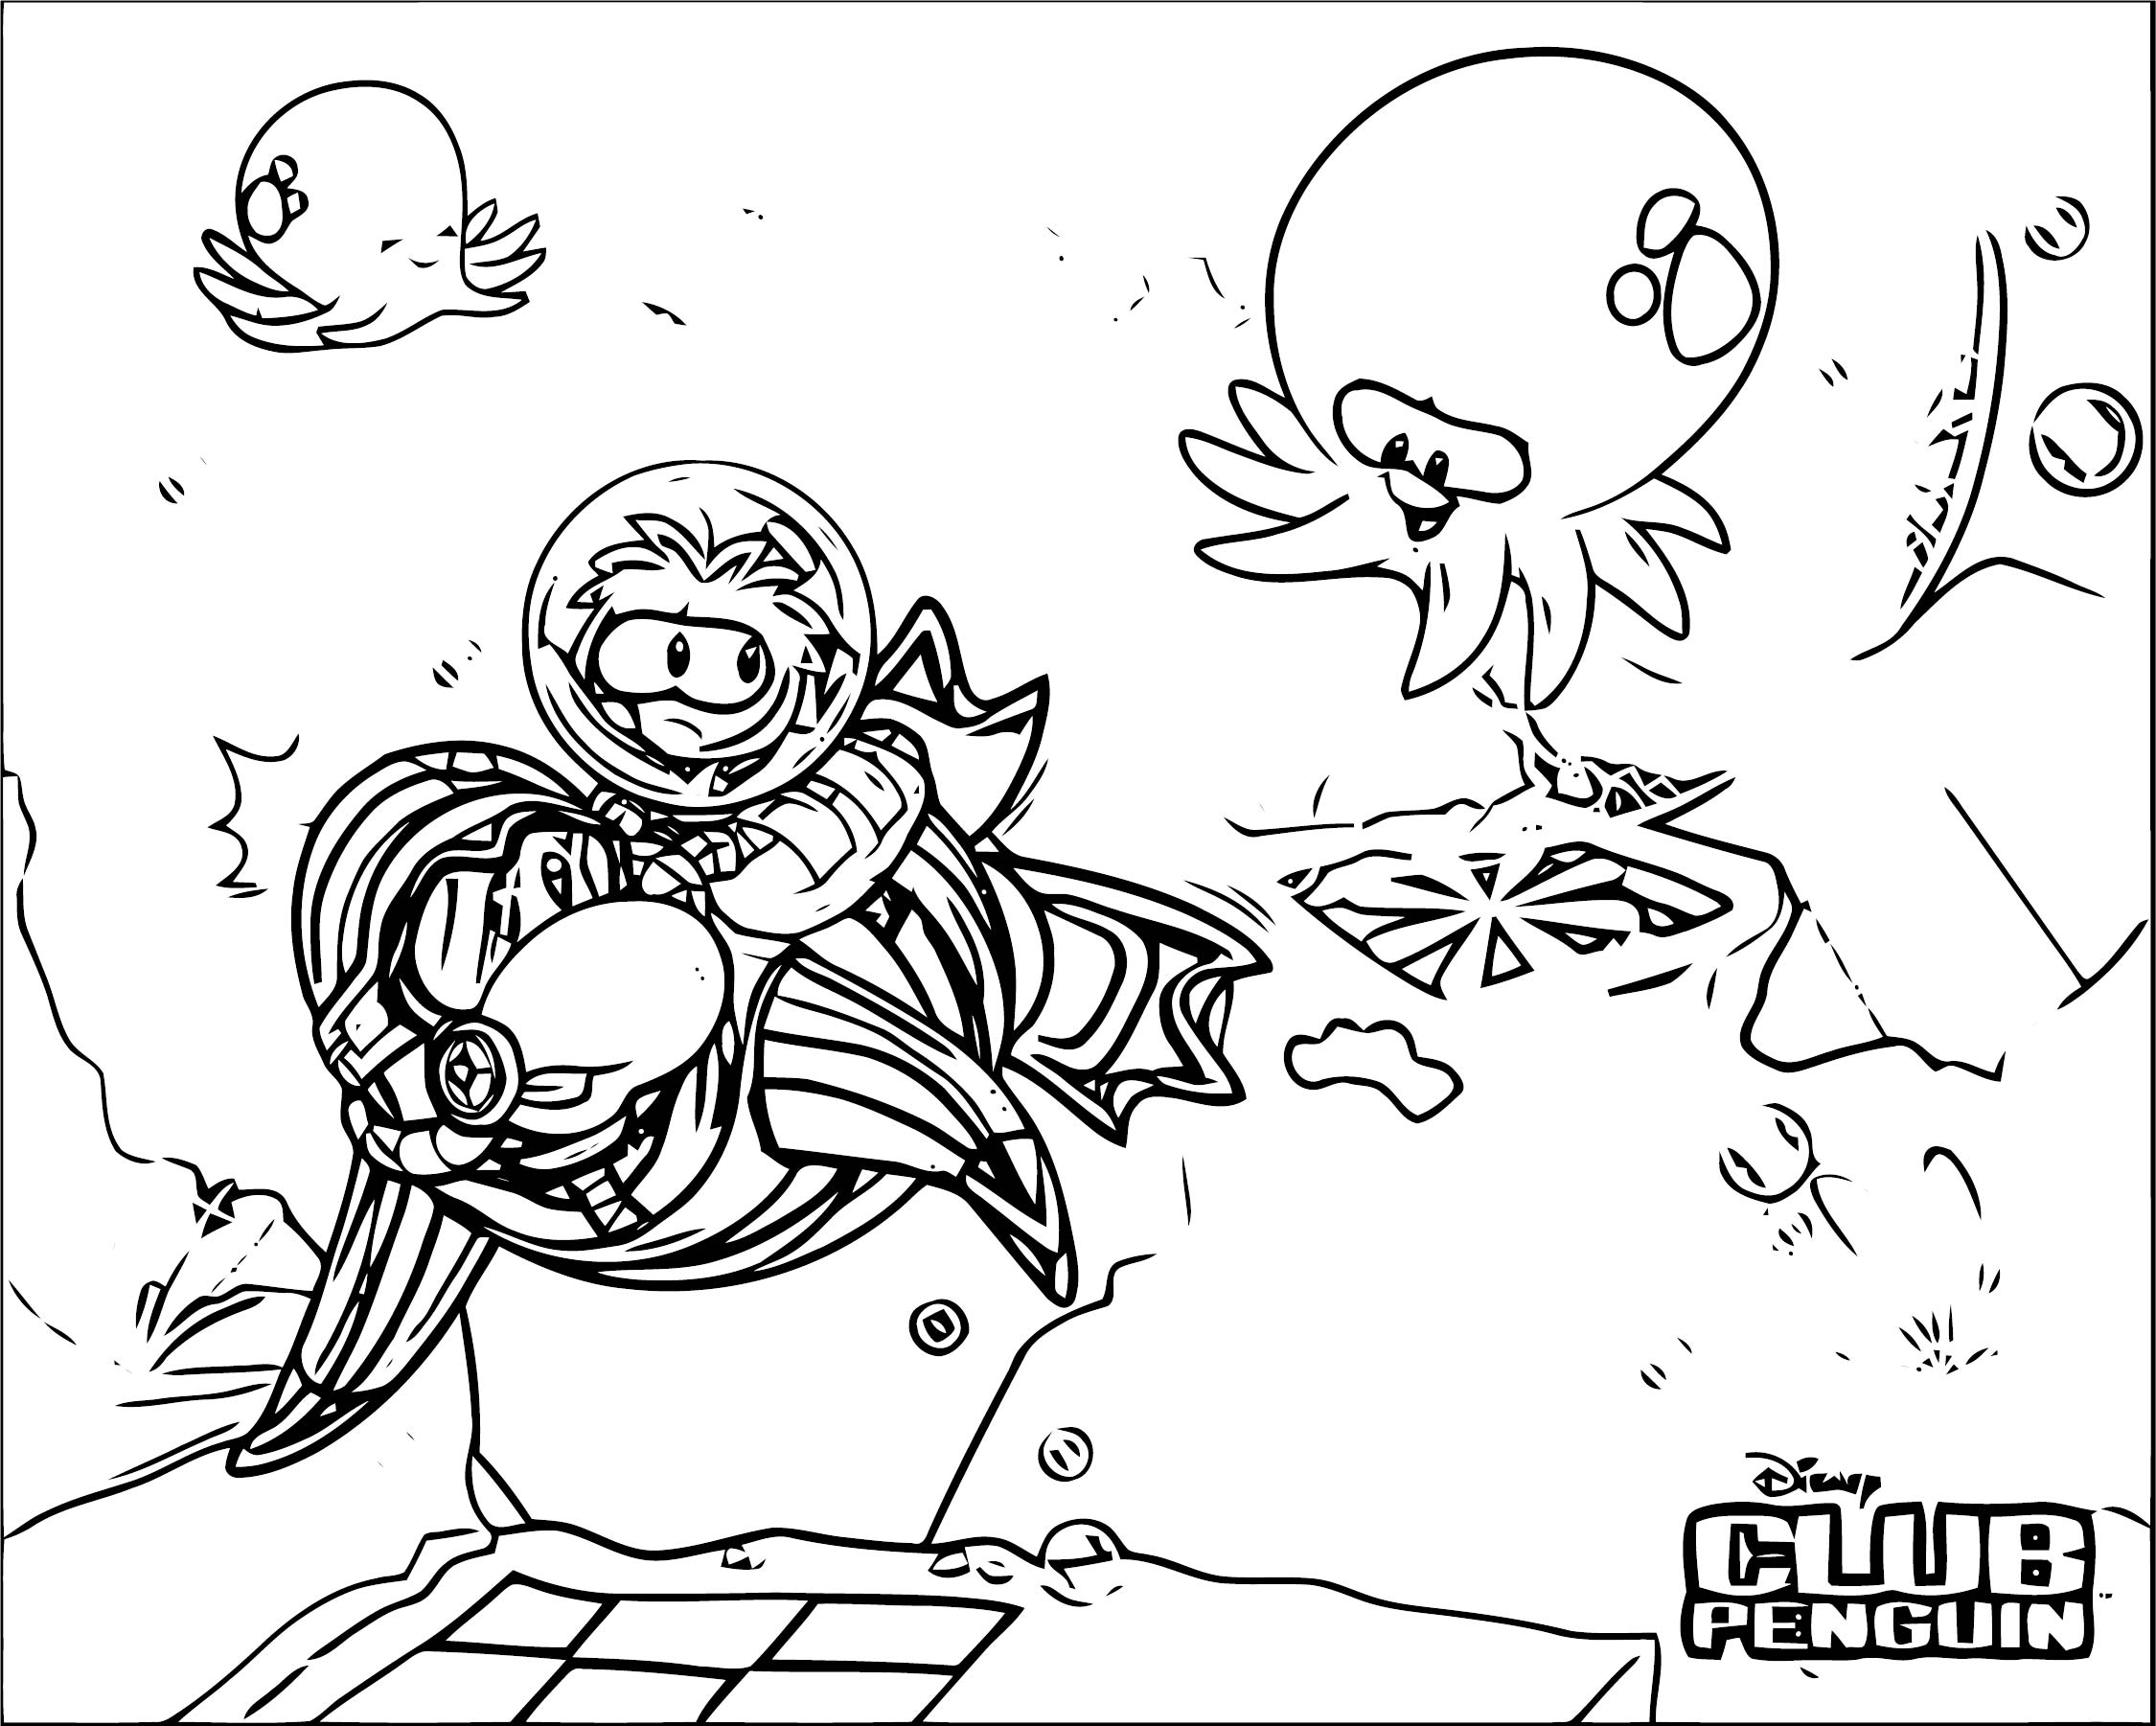 Club Penguin Wallpaper Coloring Page